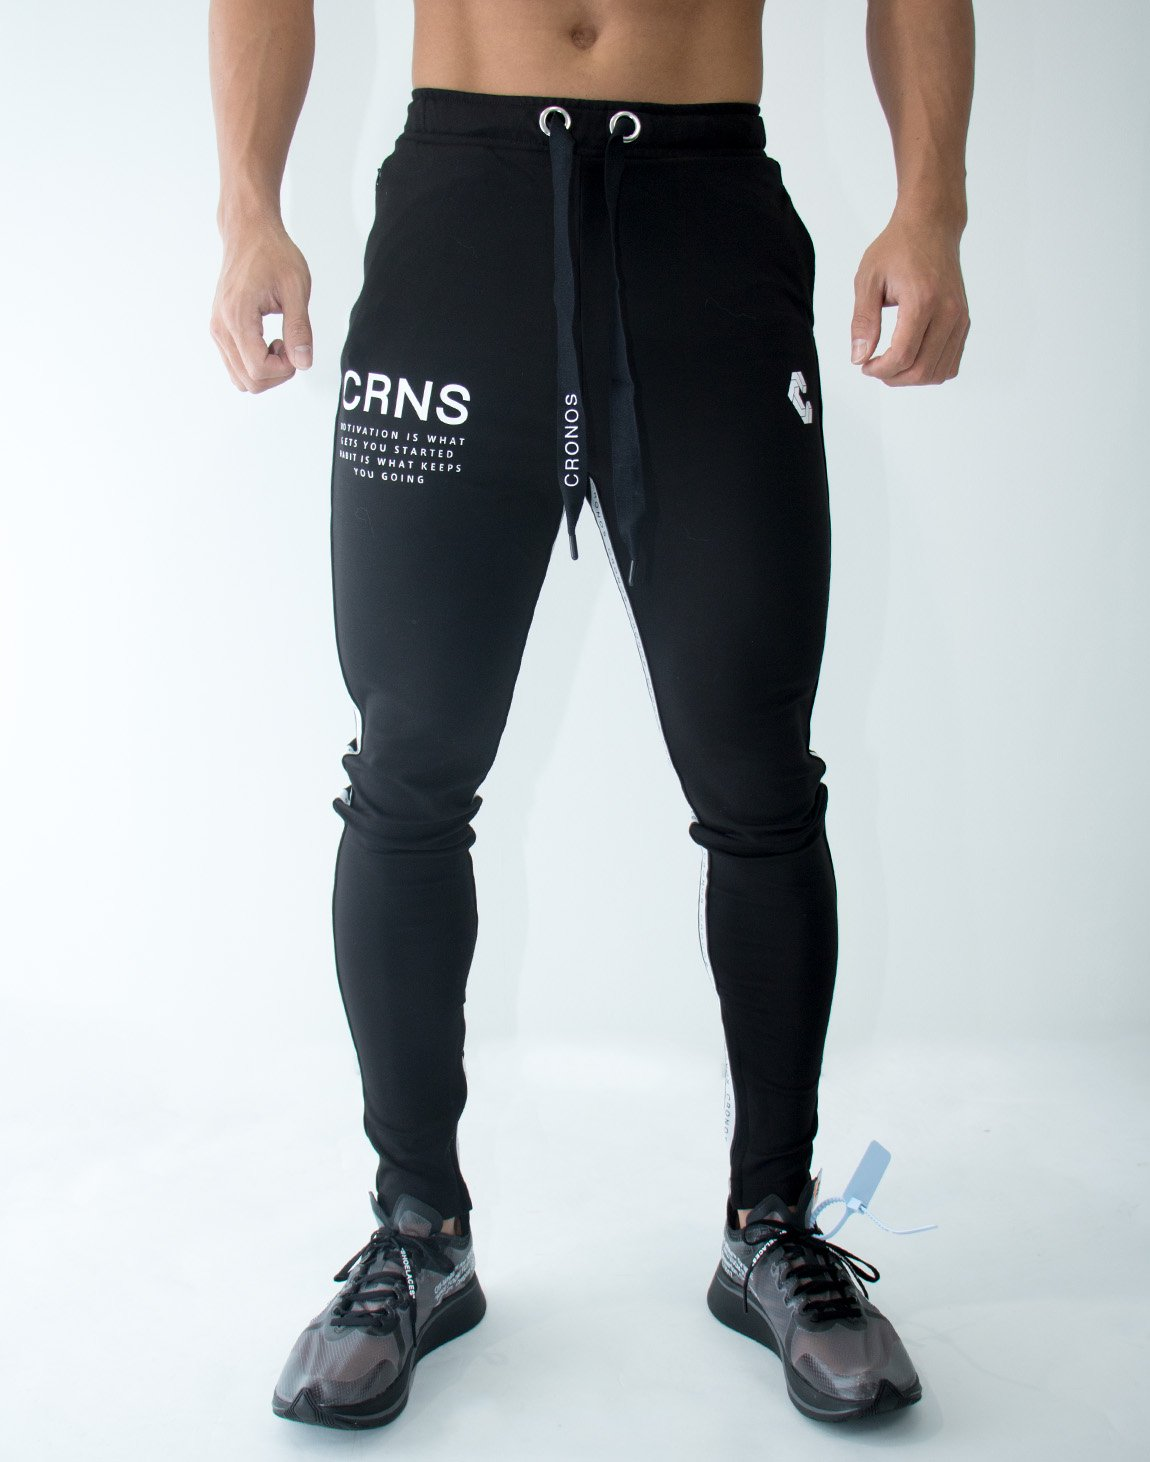 <img class='new_mark_img1' src='https://img.shop-pro.jp/img/new/icons1.gif' style='border:none;display:inline;margin:0px;padding:0px;width:auto;' />CRNS Logo Stripe Long Pants 09 BLACK